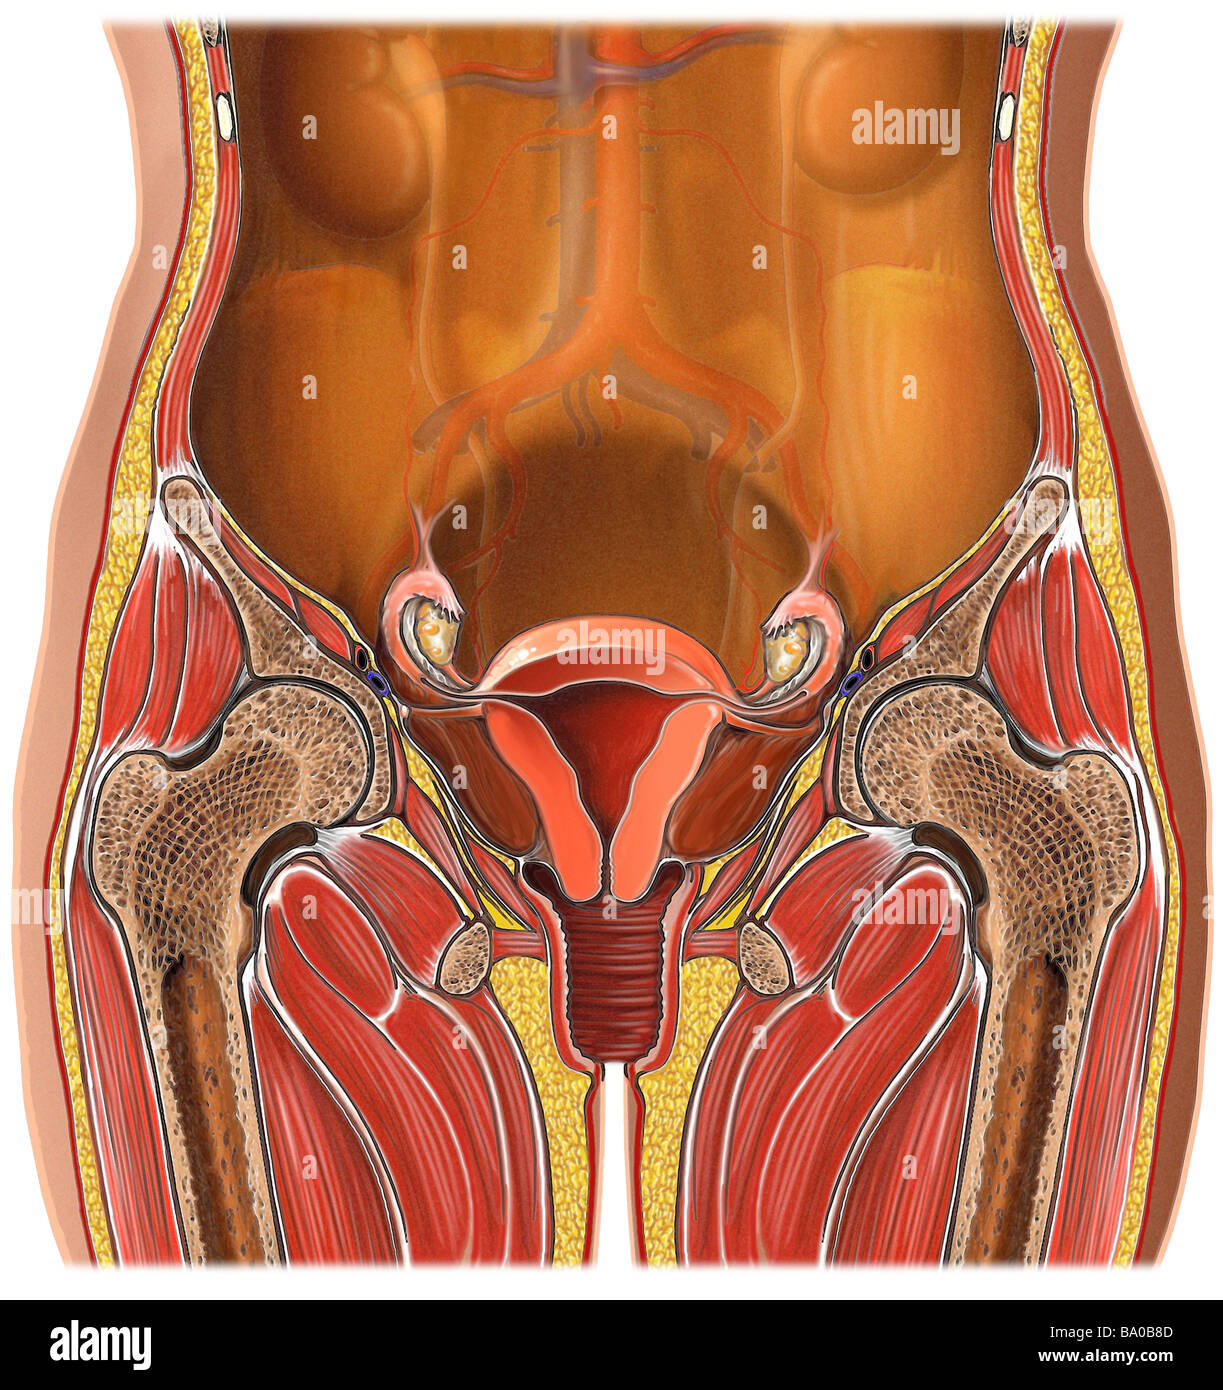 female reproductive organs stock photos & female reproductive, Cephalic Vein